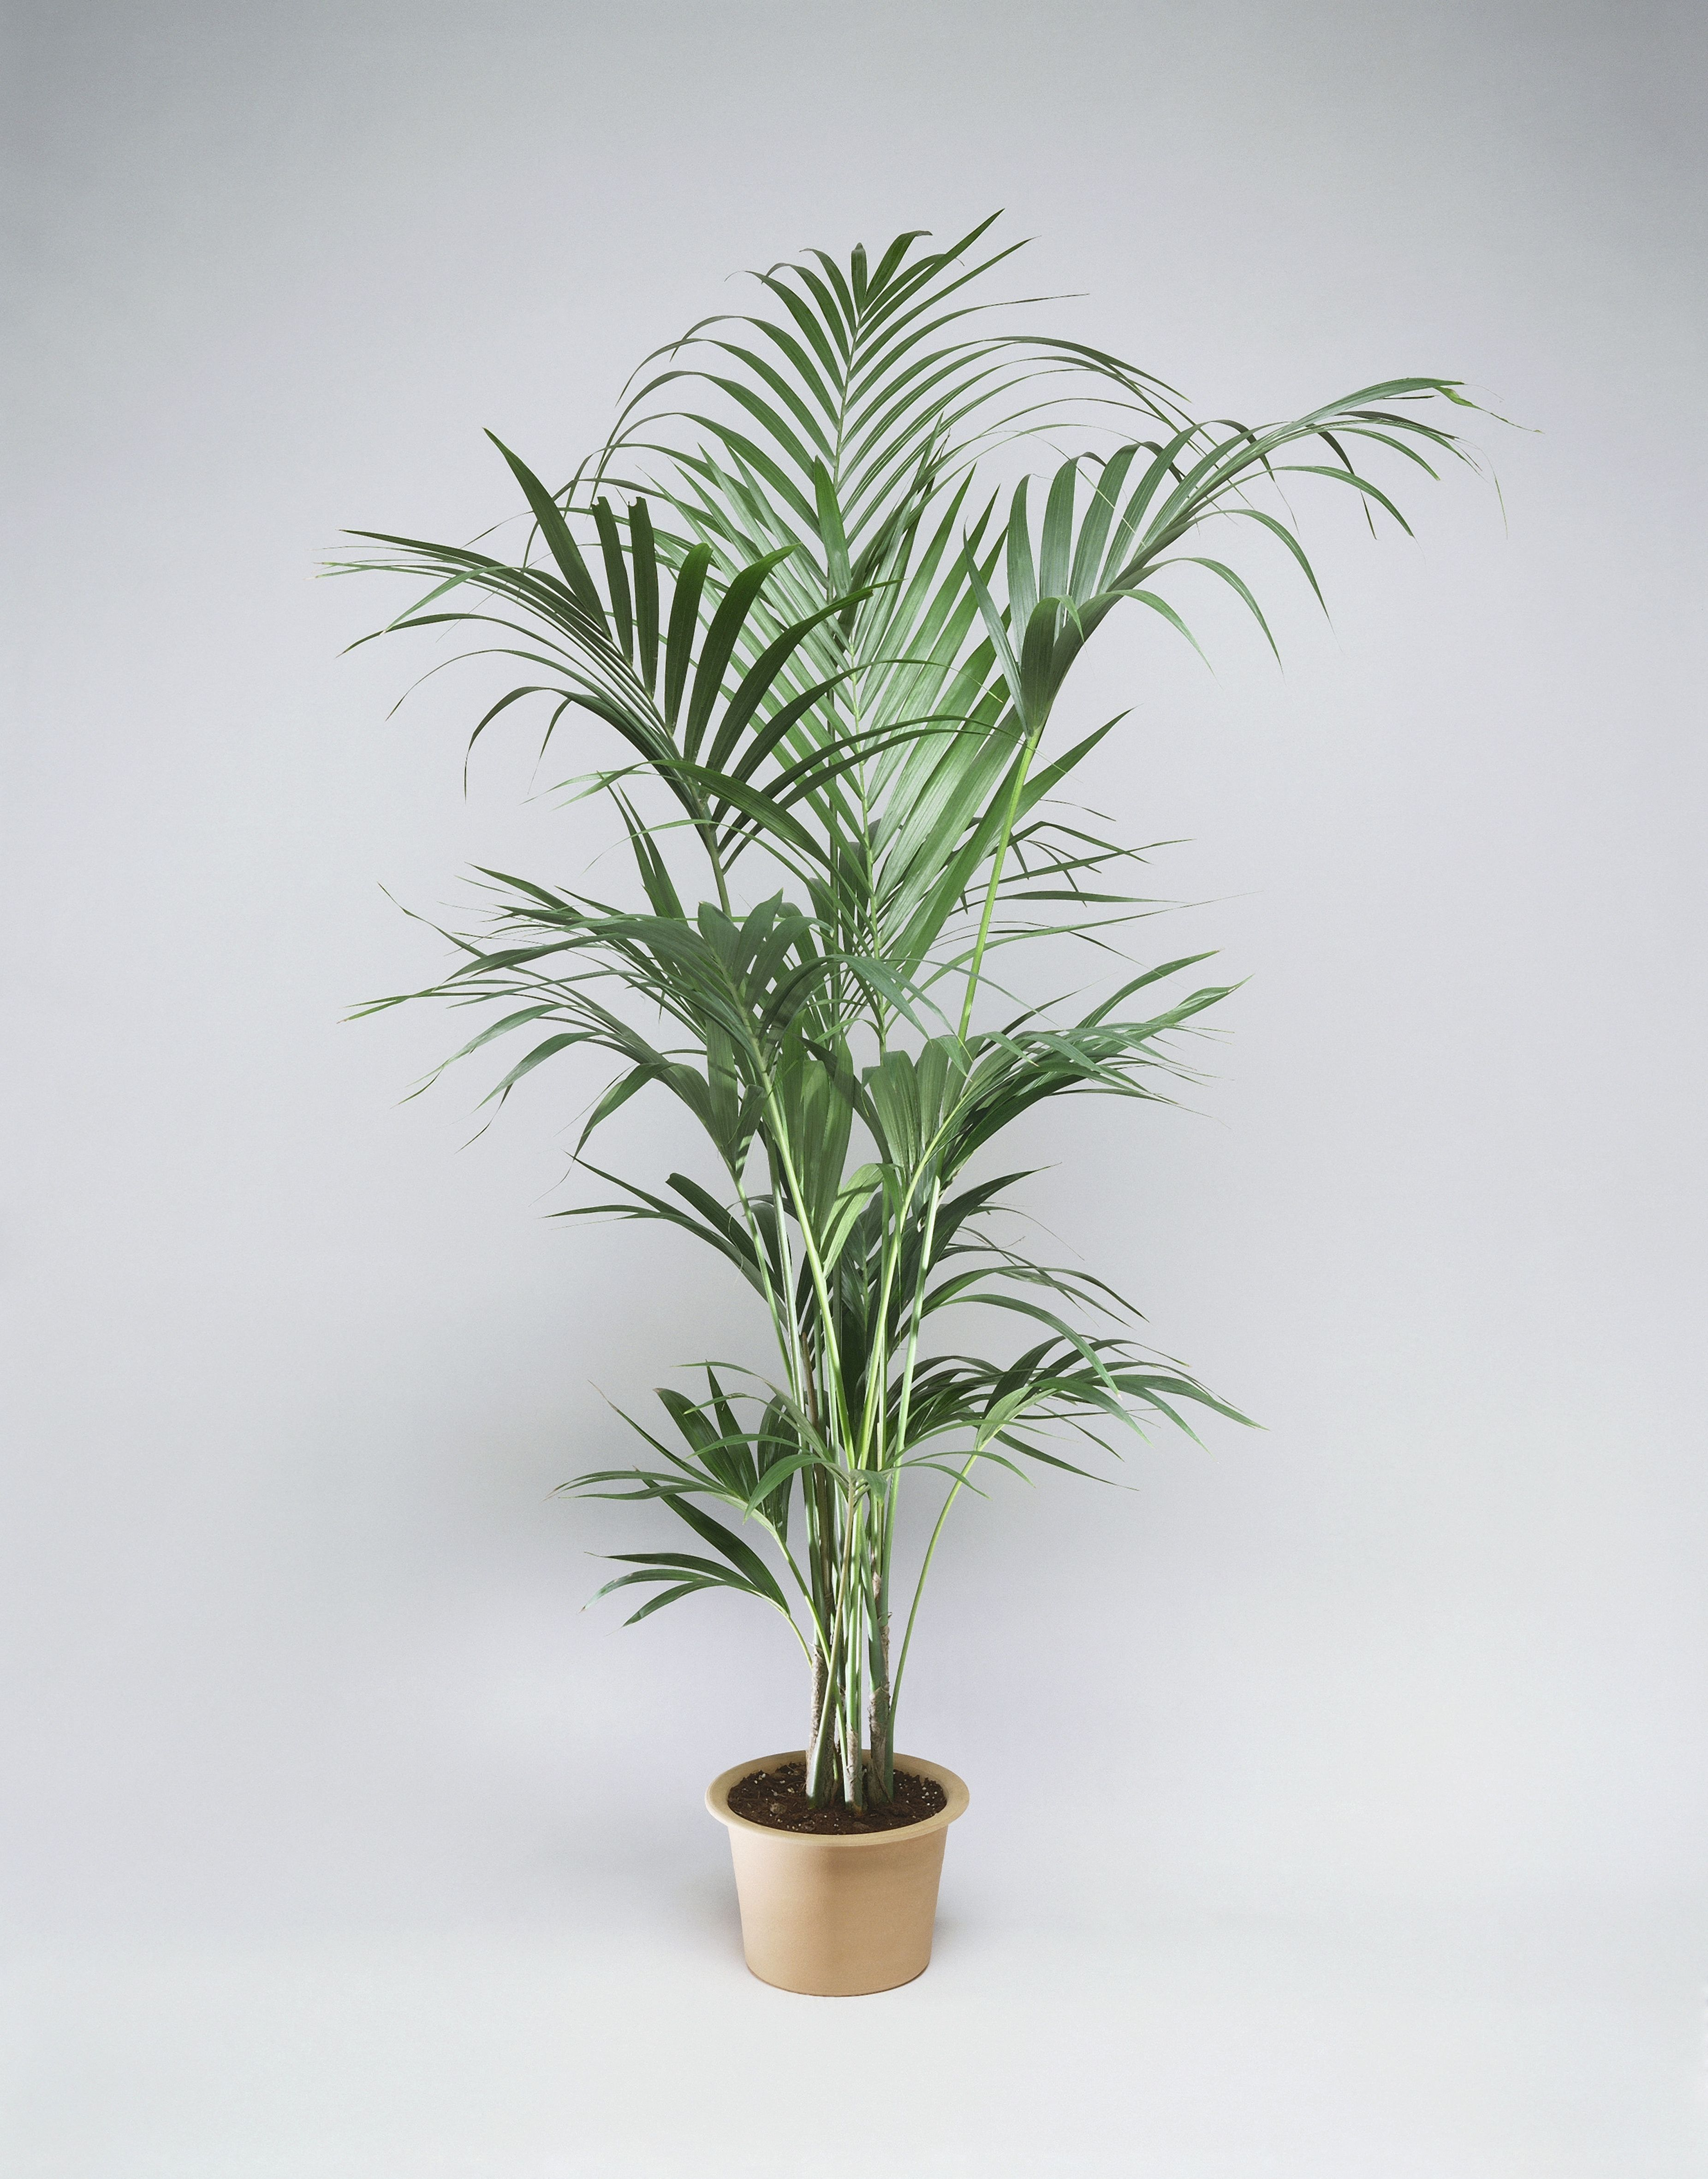 Kentia Palm (Howea Forsteriana) on house plant with peach blooms, house plant with jagged leaves, house plant with curly leaves, plant with spikes on leaves, indoor plants with long leaves, house plant identification leaves, house plant with brown leaves, house plant with green and yellow variegated leaves, house plant with bumpy leaves, house plant with waxy flowers, house plant with striped leaves, house plant with heart shaped leaves, house plant spiky green yellow, house with pink and green plant leaves, house plants with colorful leaves, house plant with fuzzy leaves, house plant with pointed leaves, house plant with big leaves, indoor plants with colorful leaves,